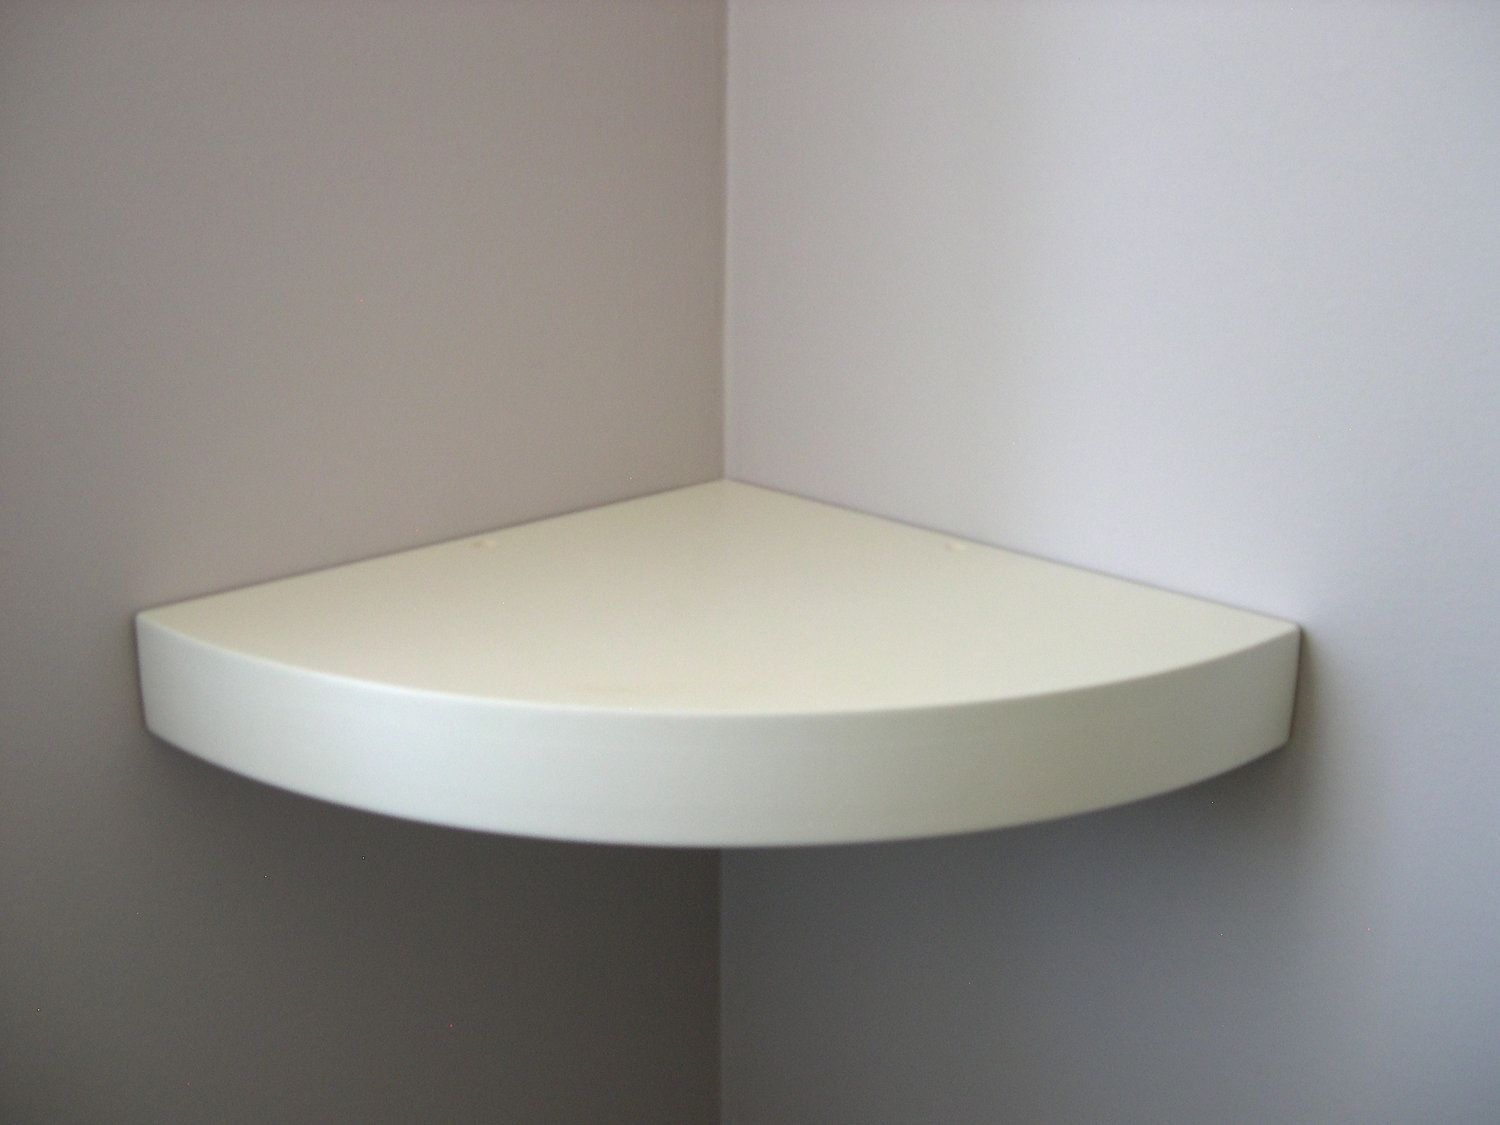 Floating Shelf Corner Floating Shelf 12 White Etsy In 2020 Floating Corner Shelves Corner Shelves Floating Wall Shelves